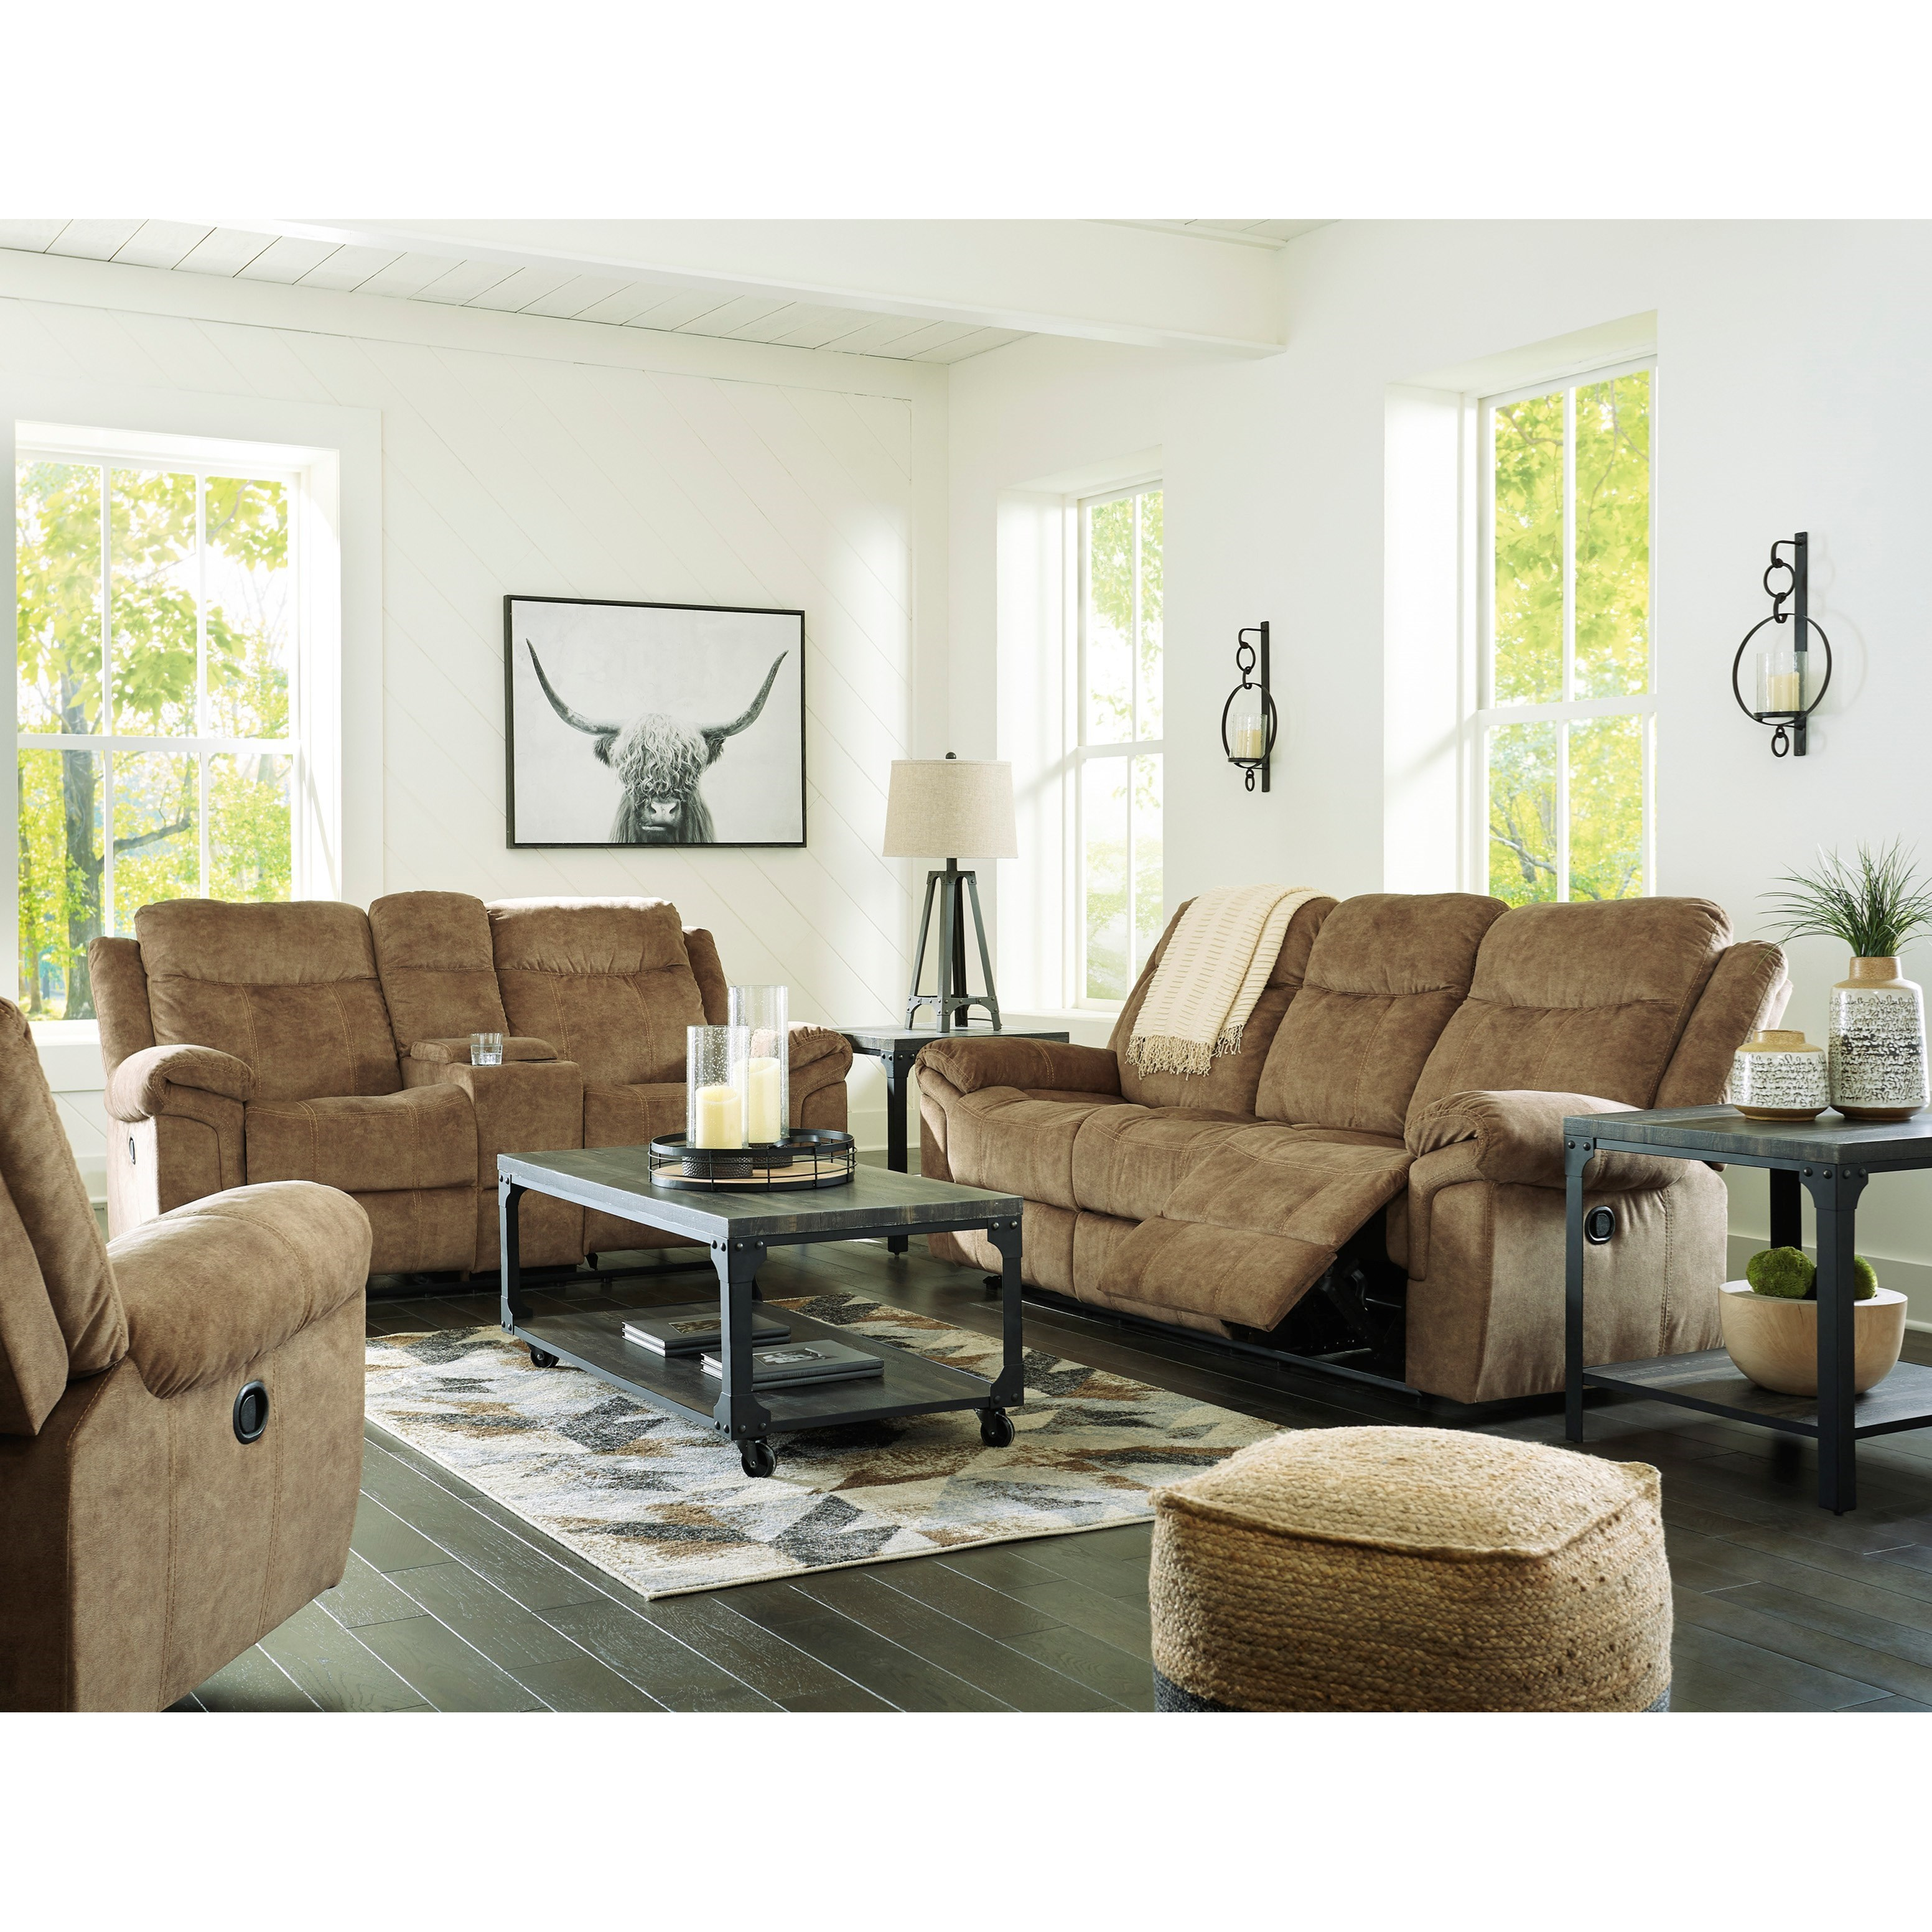 Huddle-Up Reclining Living Room Group at Sadler's Home Furnishings